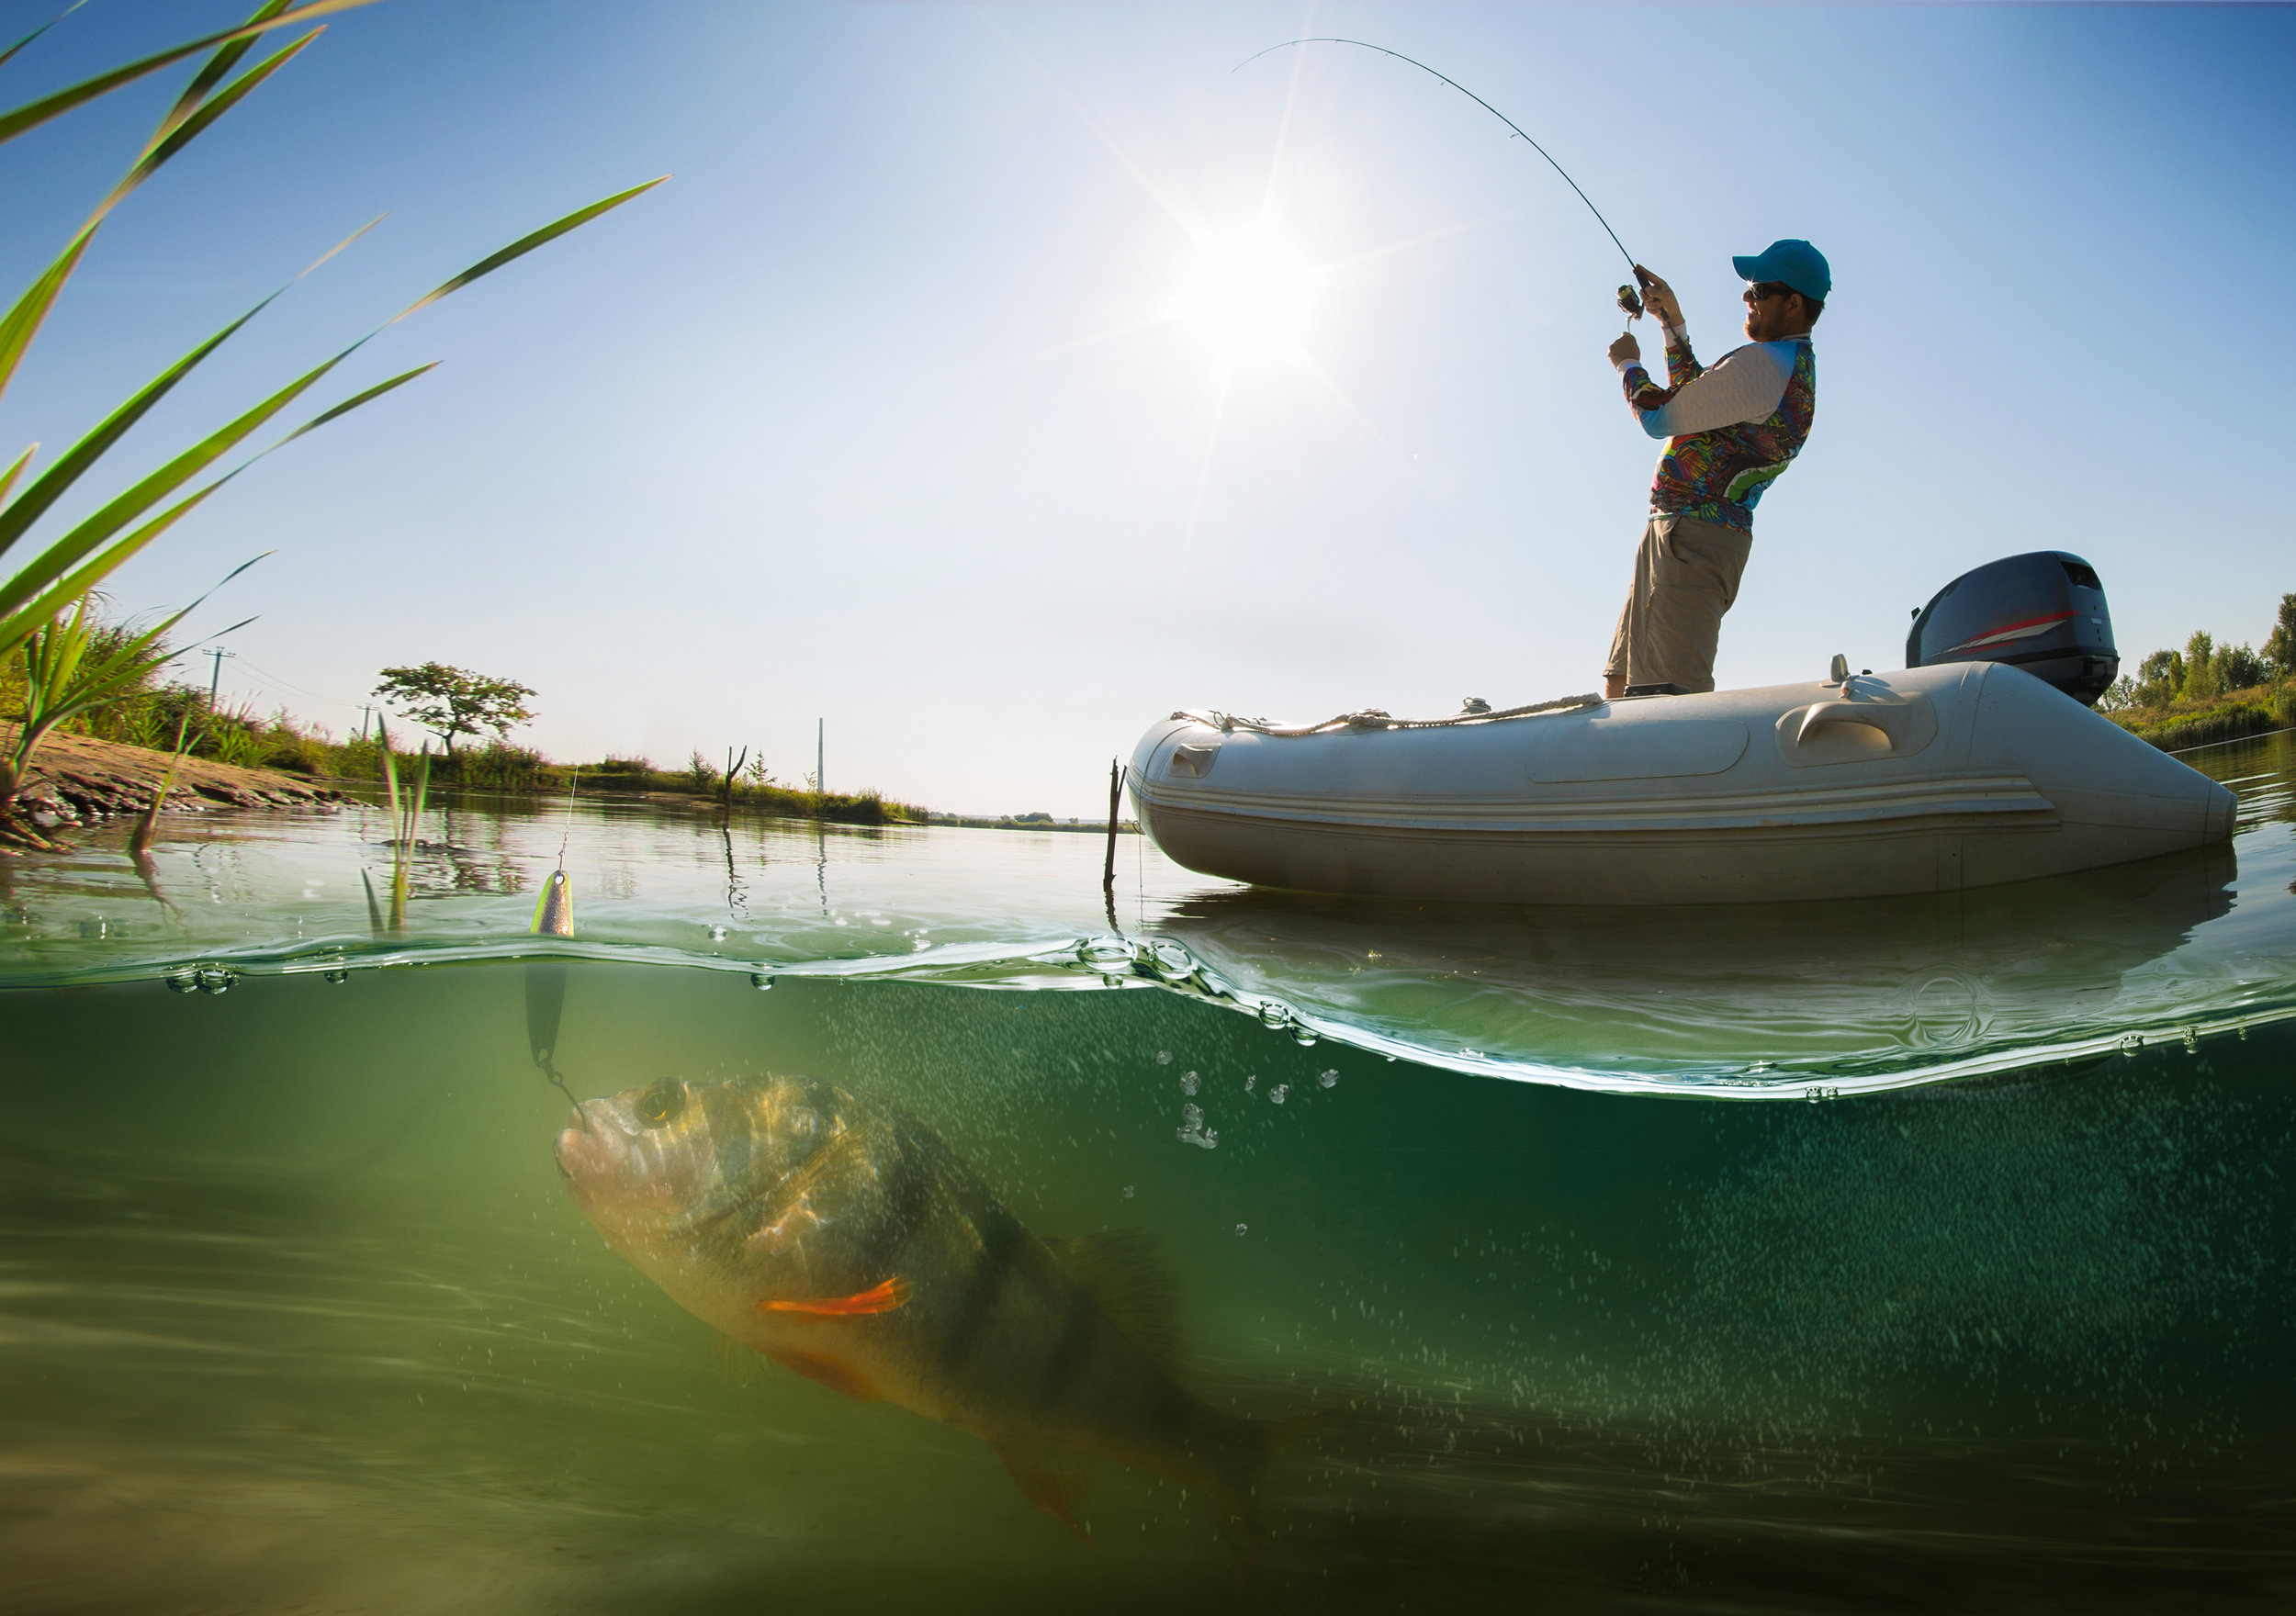 3.) It's also one of the country's top spots for bass fishing.